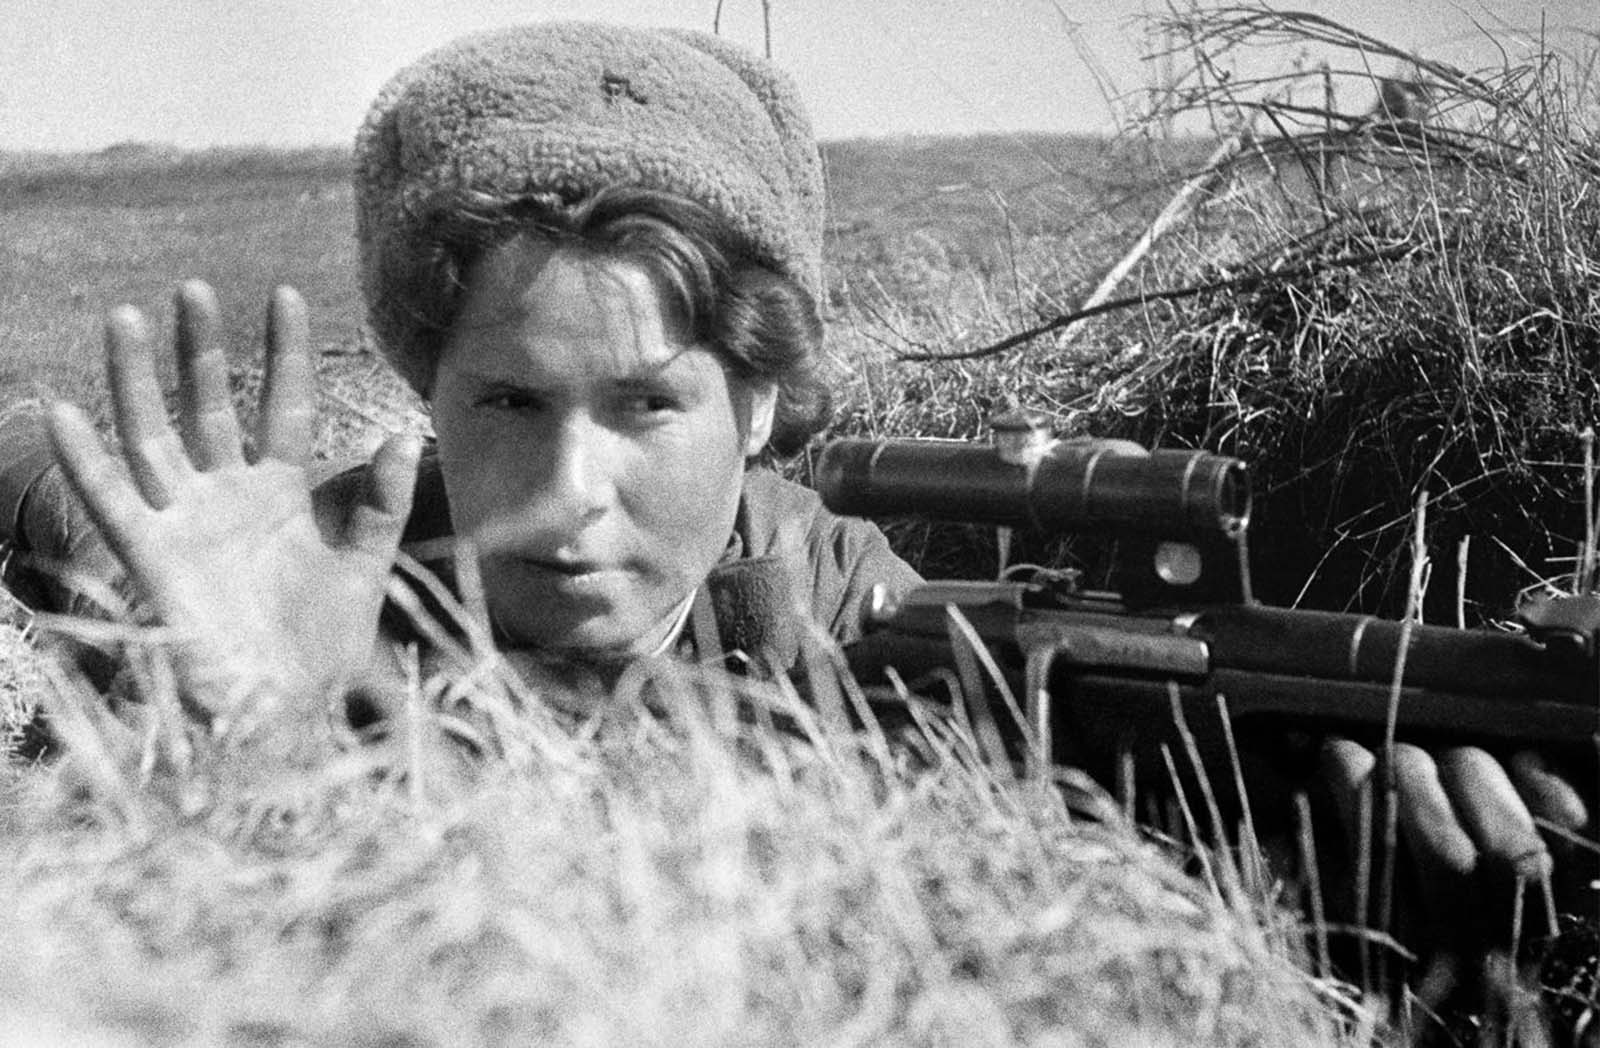 A Soviet sniper in training. May 6, 1942.